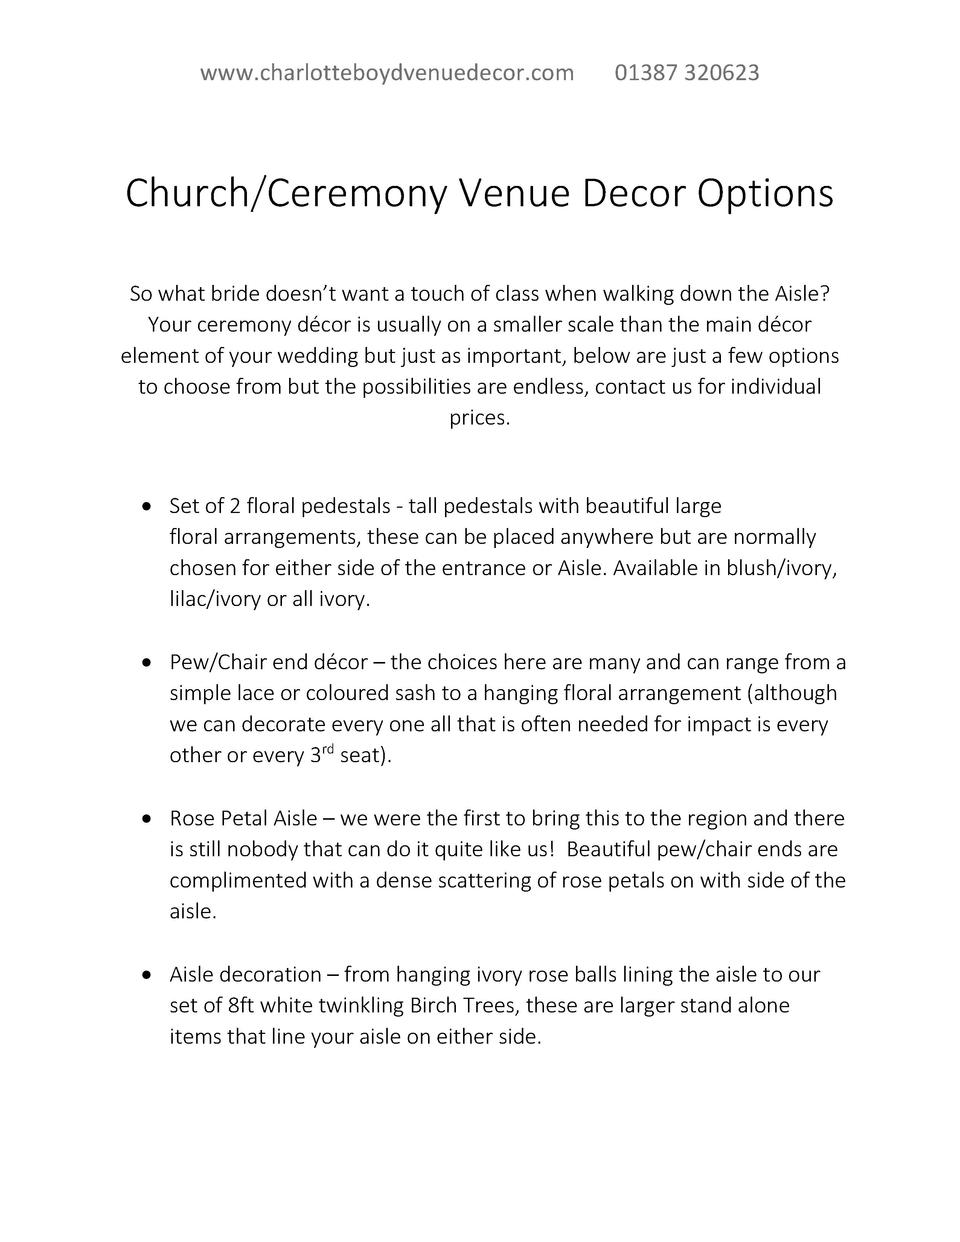 www.charlotteboydvenuedecor.com  01387 320623  Church Ceremony Venue Decor Options So what bride doesn   t want a touch of...